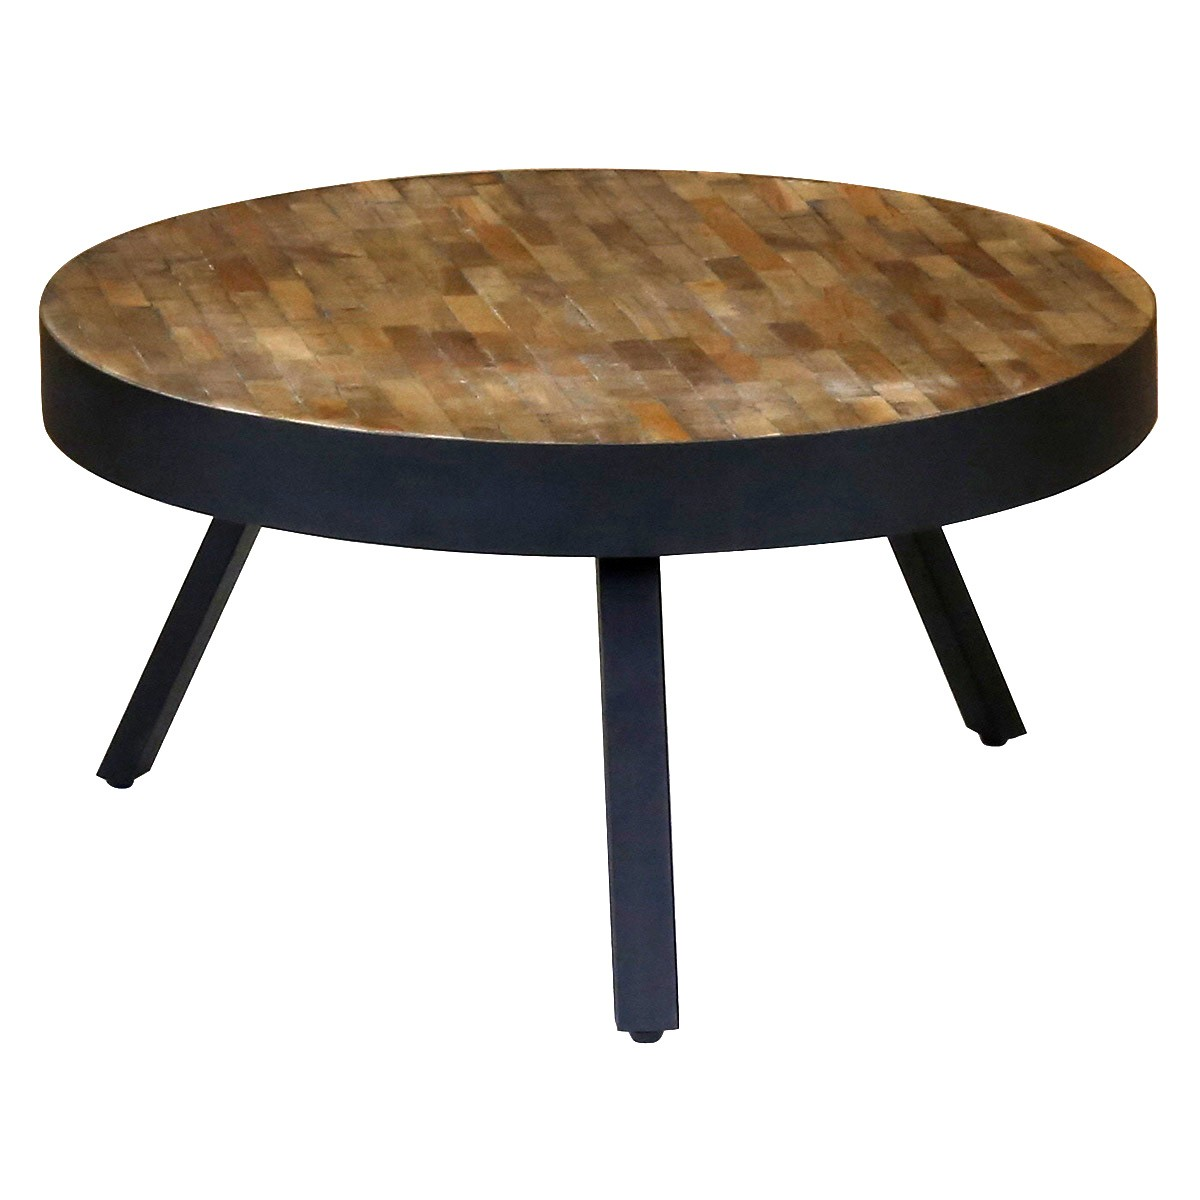 Table basse ronde teck et m tal style industriel et loft for Table basse ronde industrielle